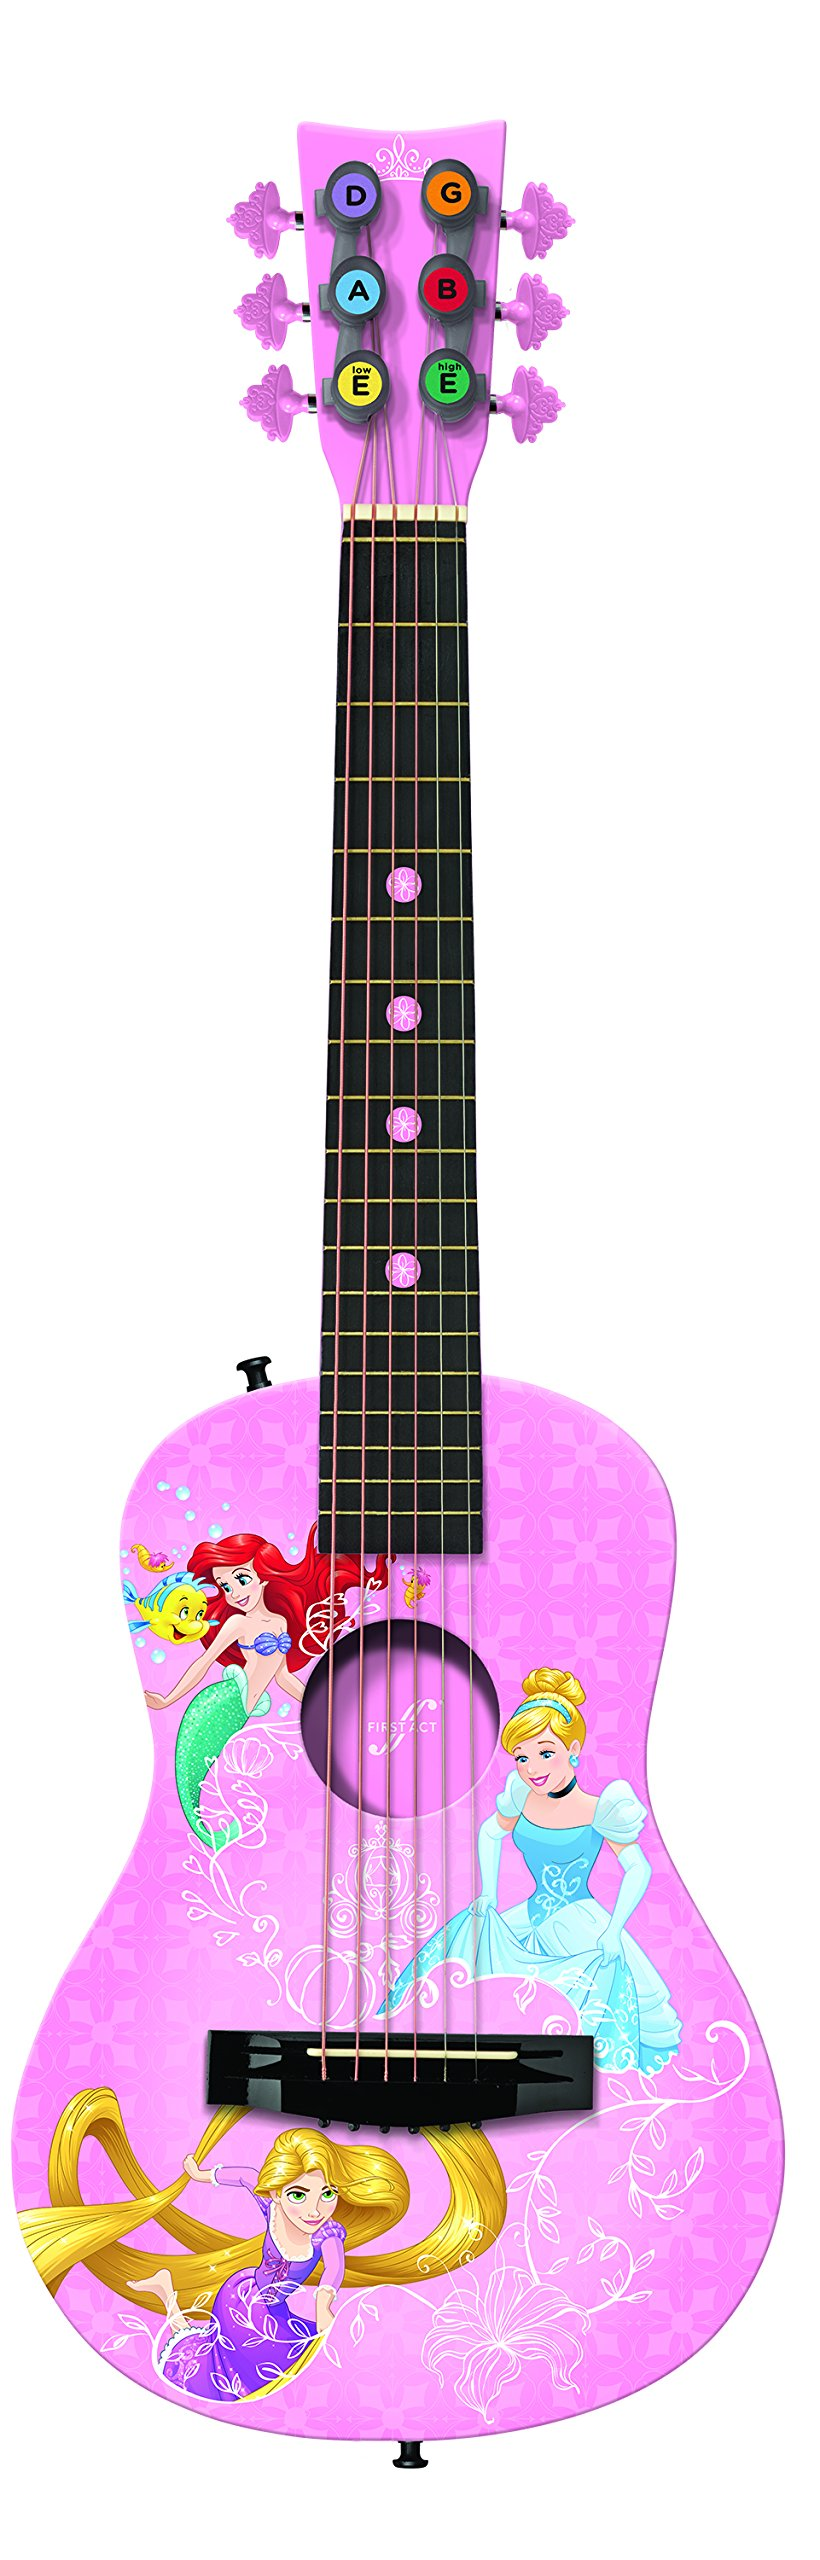 Disney Princess Acoustic Guitar by First Act - DP705 by First Act